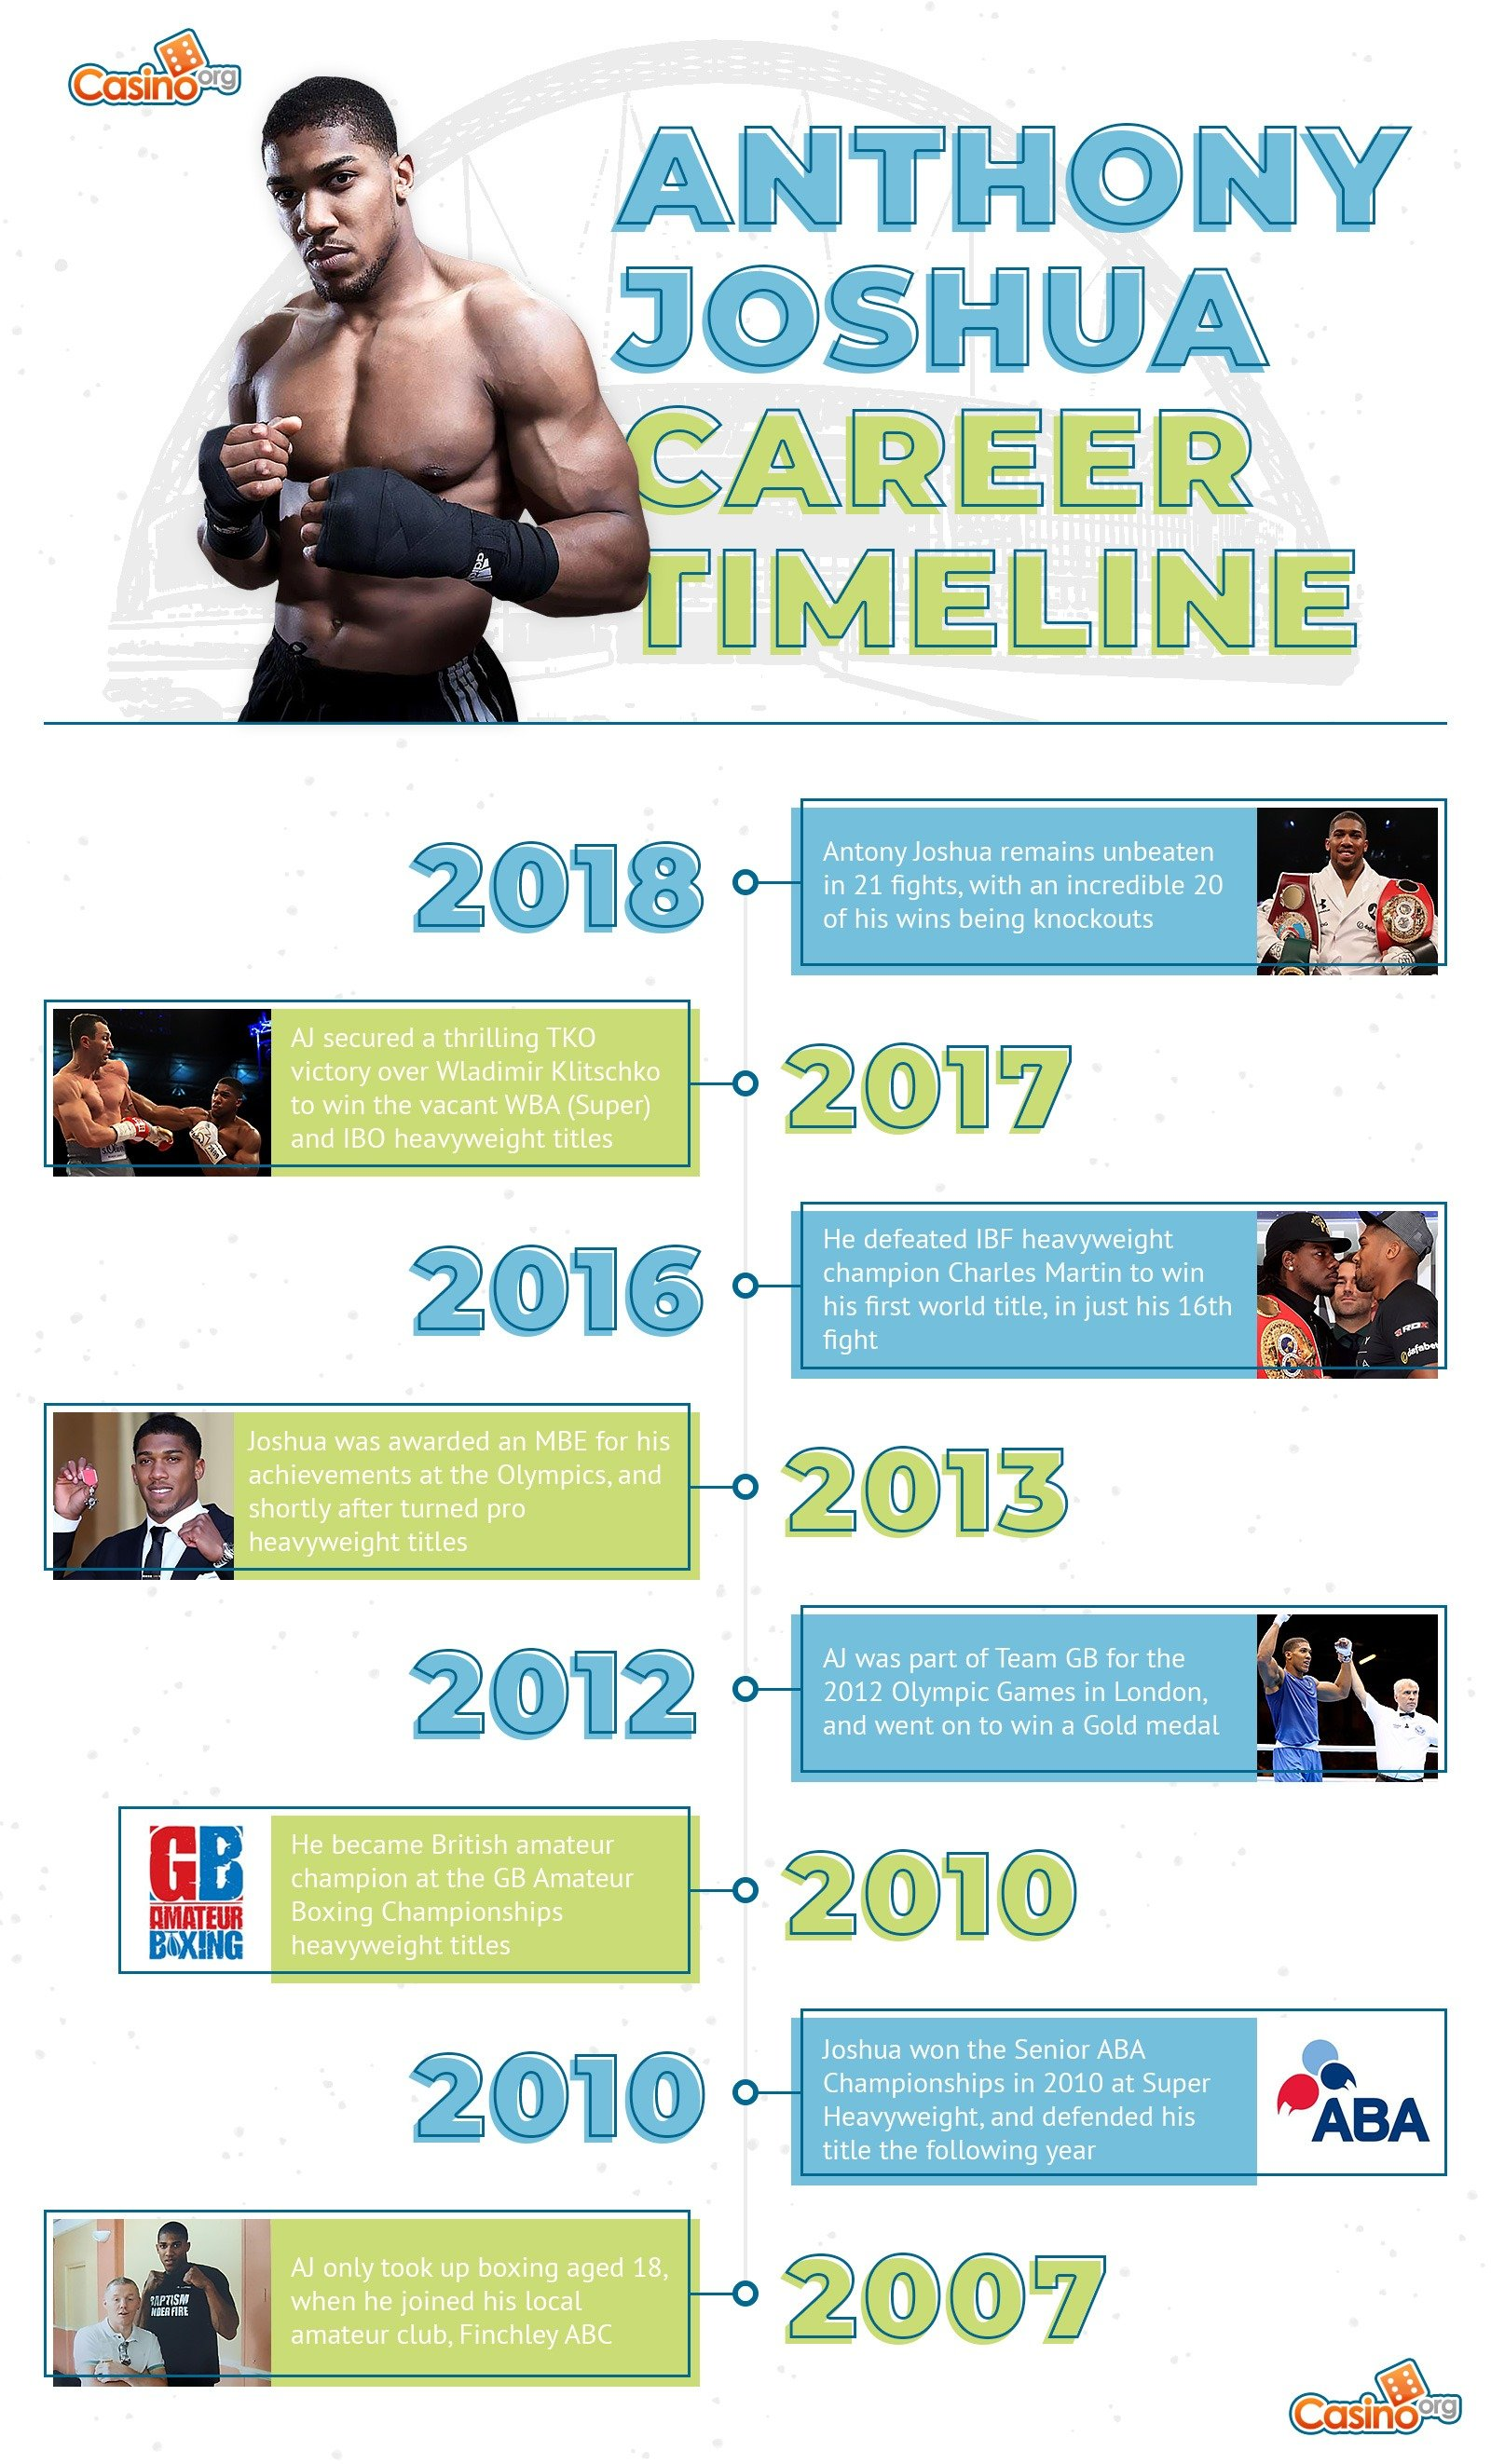 A timeline of Anthony Joshua's career